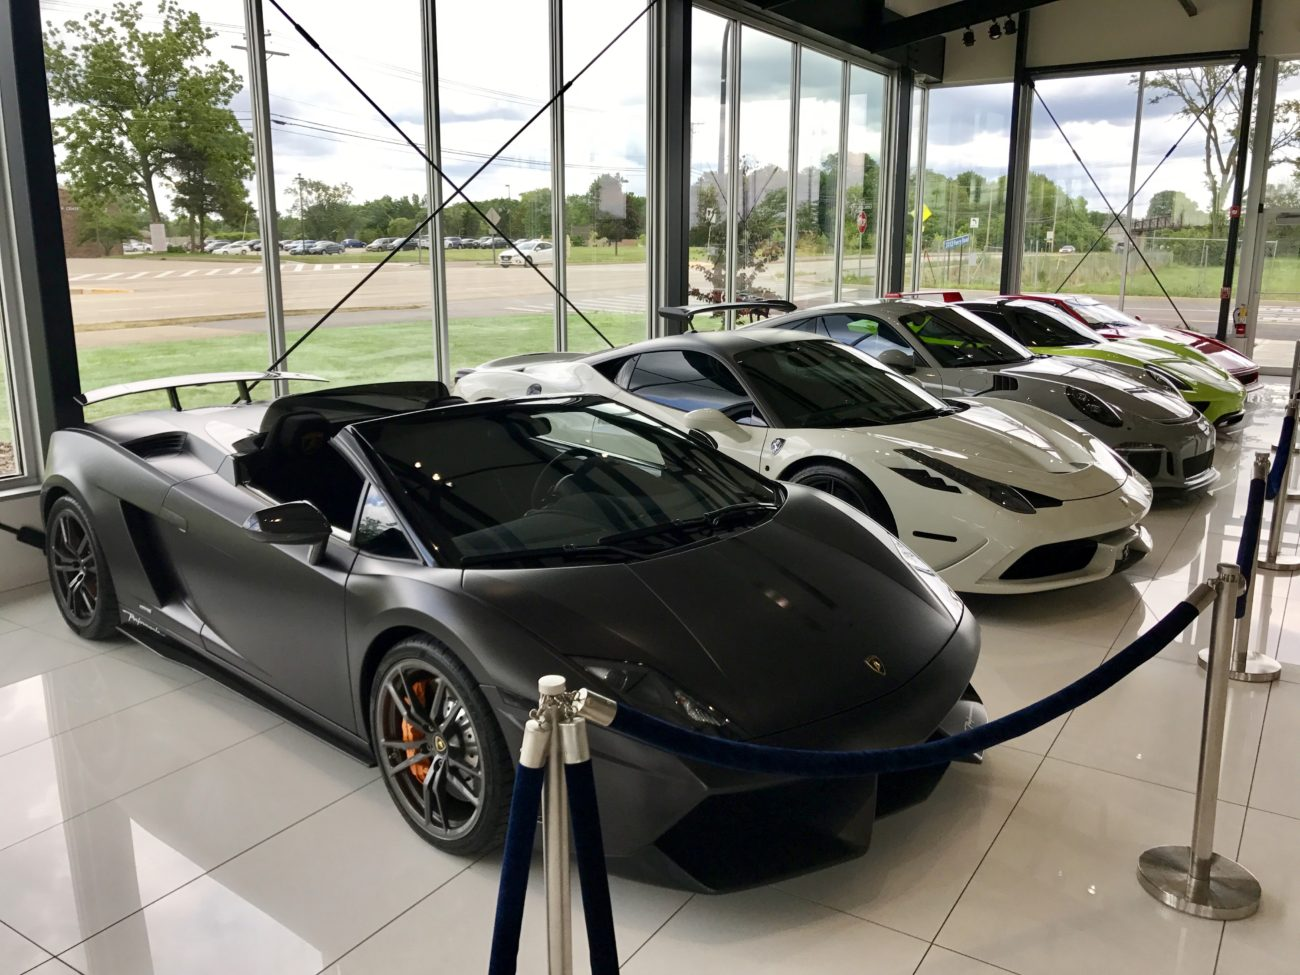 Lamborghini Gallardo Performanté Ferrari 458 Speciale Porsche GT3RS Porsche 918 Chicago Motor Cars Jewelry Box Iron Gate Motor Plaza